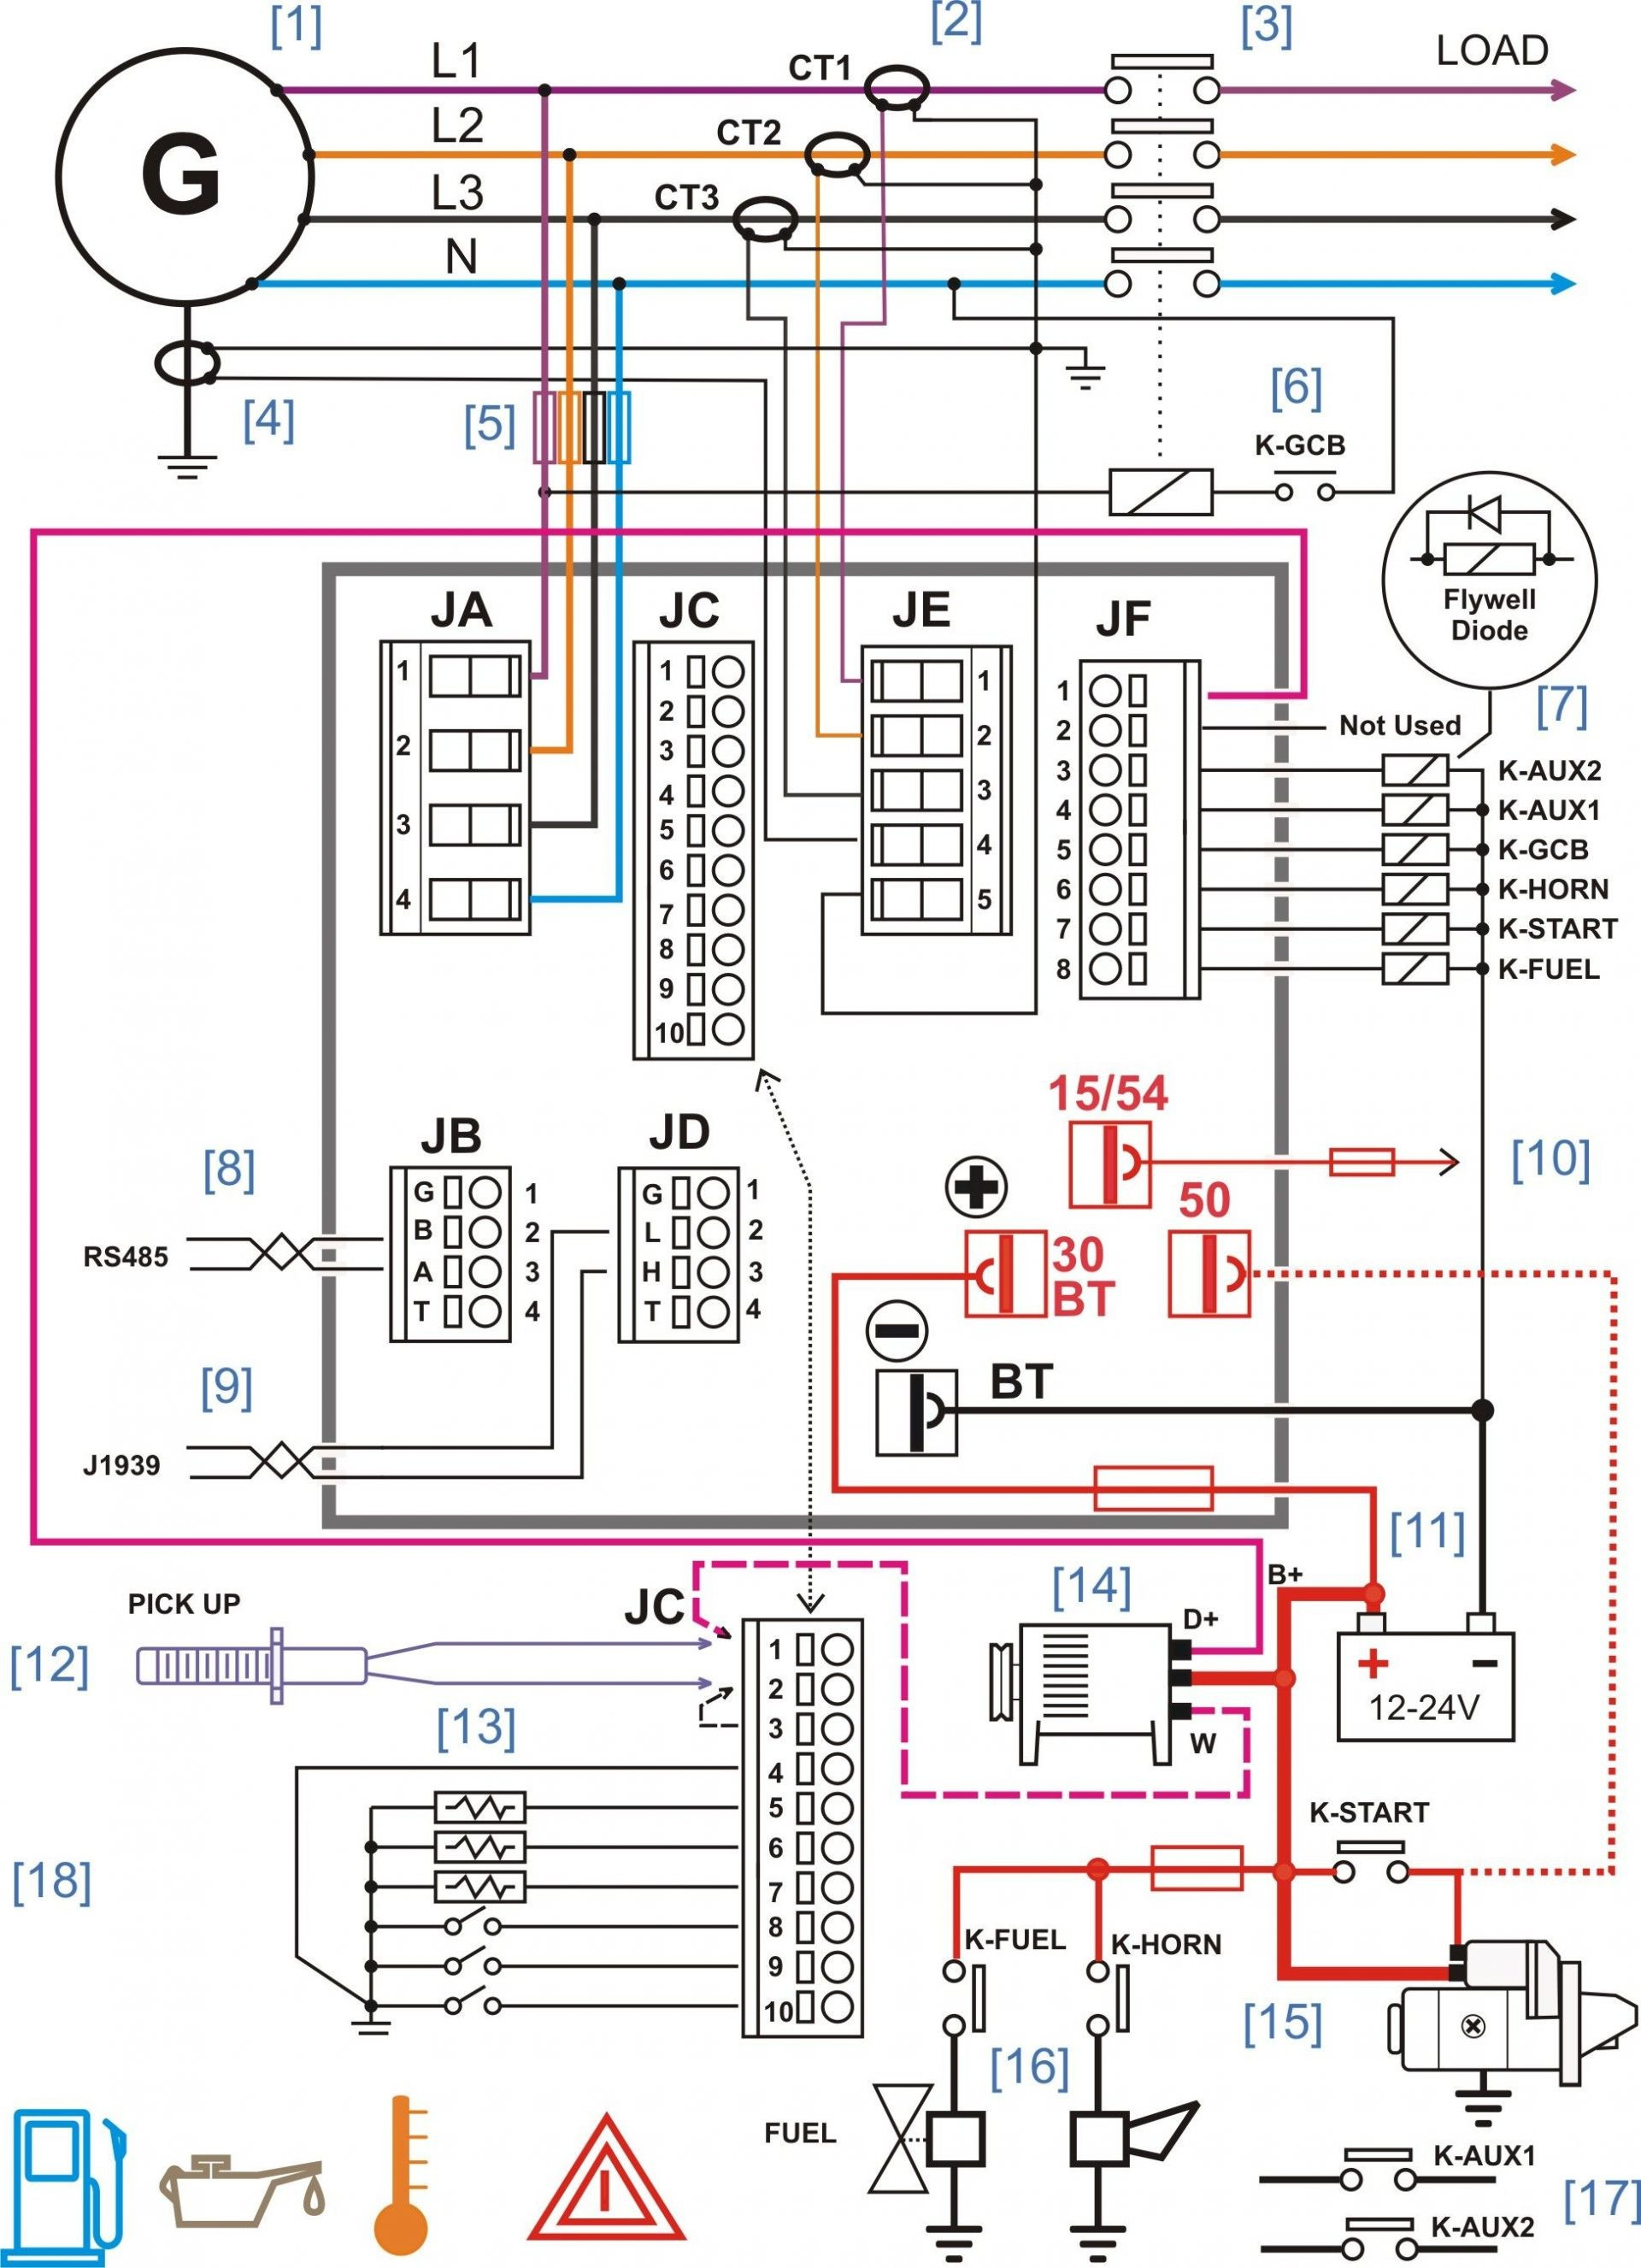 Rv Distribution Panel Wiring Diagram Sample HID Card Reader Wiring Rv Control  Panel Wiring Diagrams